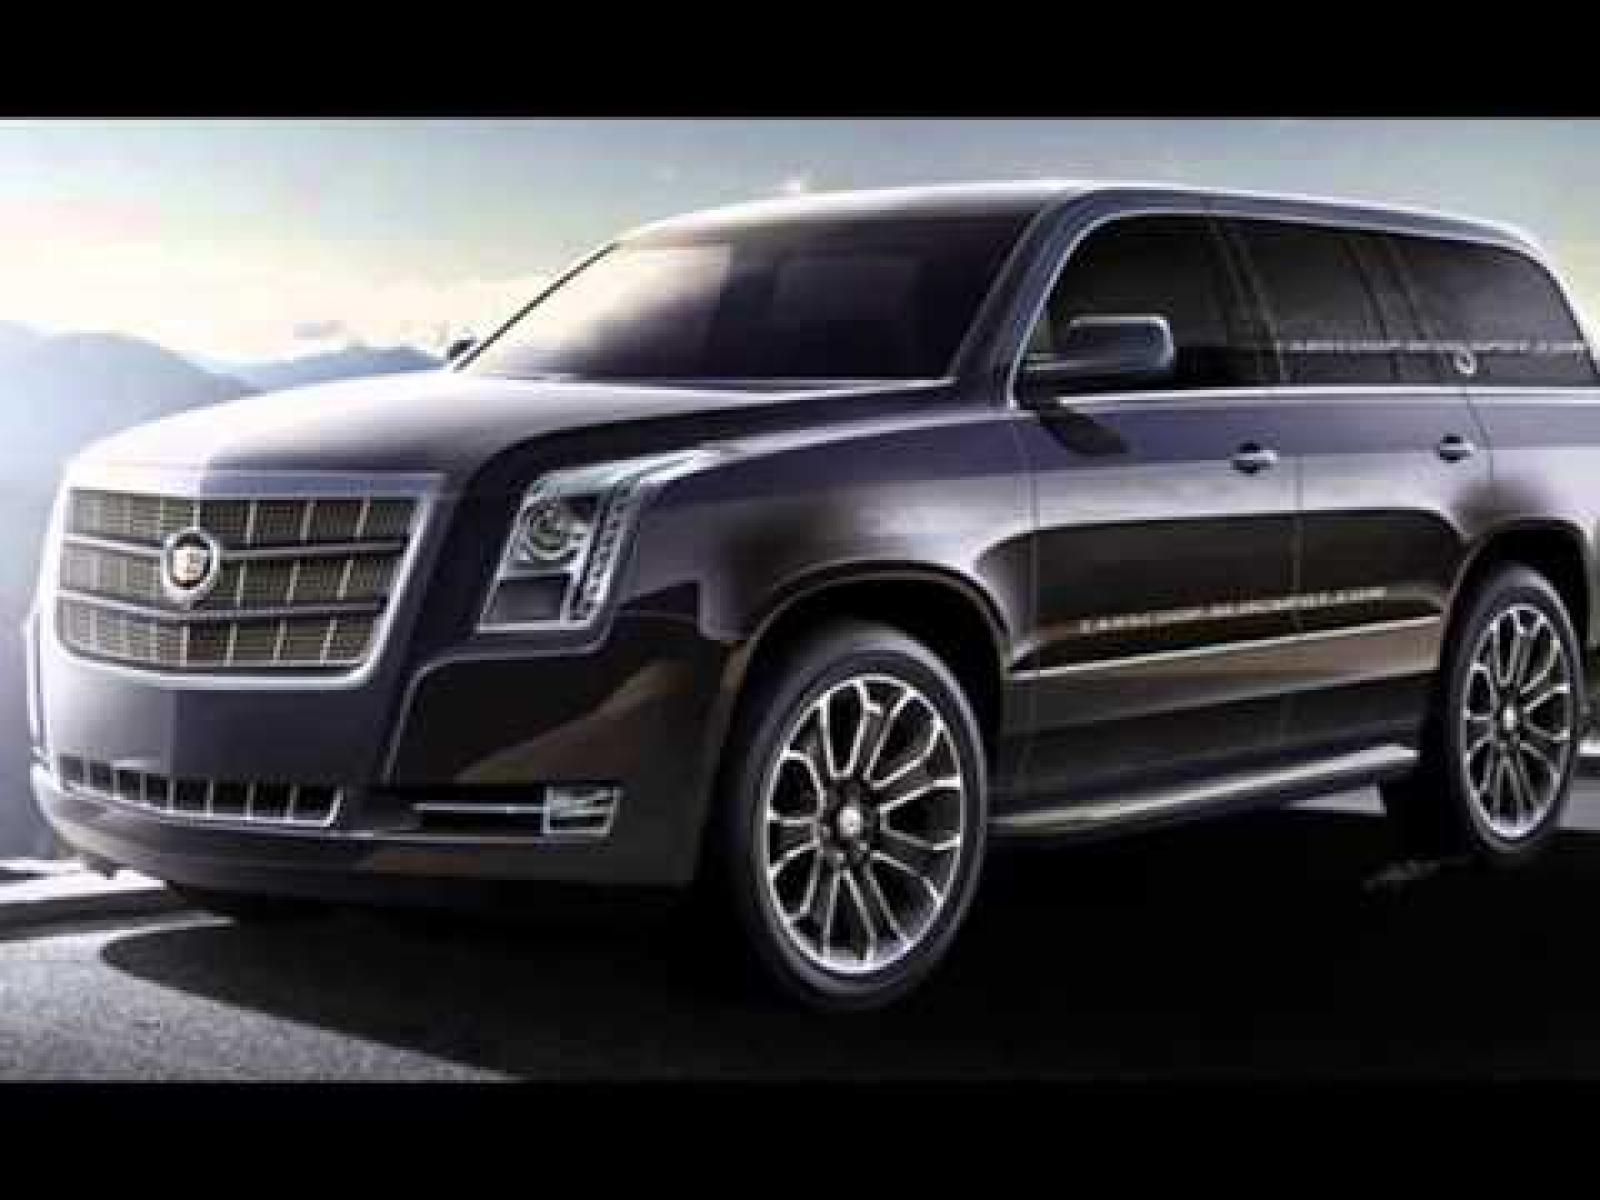 2014 cadillac escalade information and photos zombiedrive. Black Bedroom Furniture Sets. Home Design Ideas